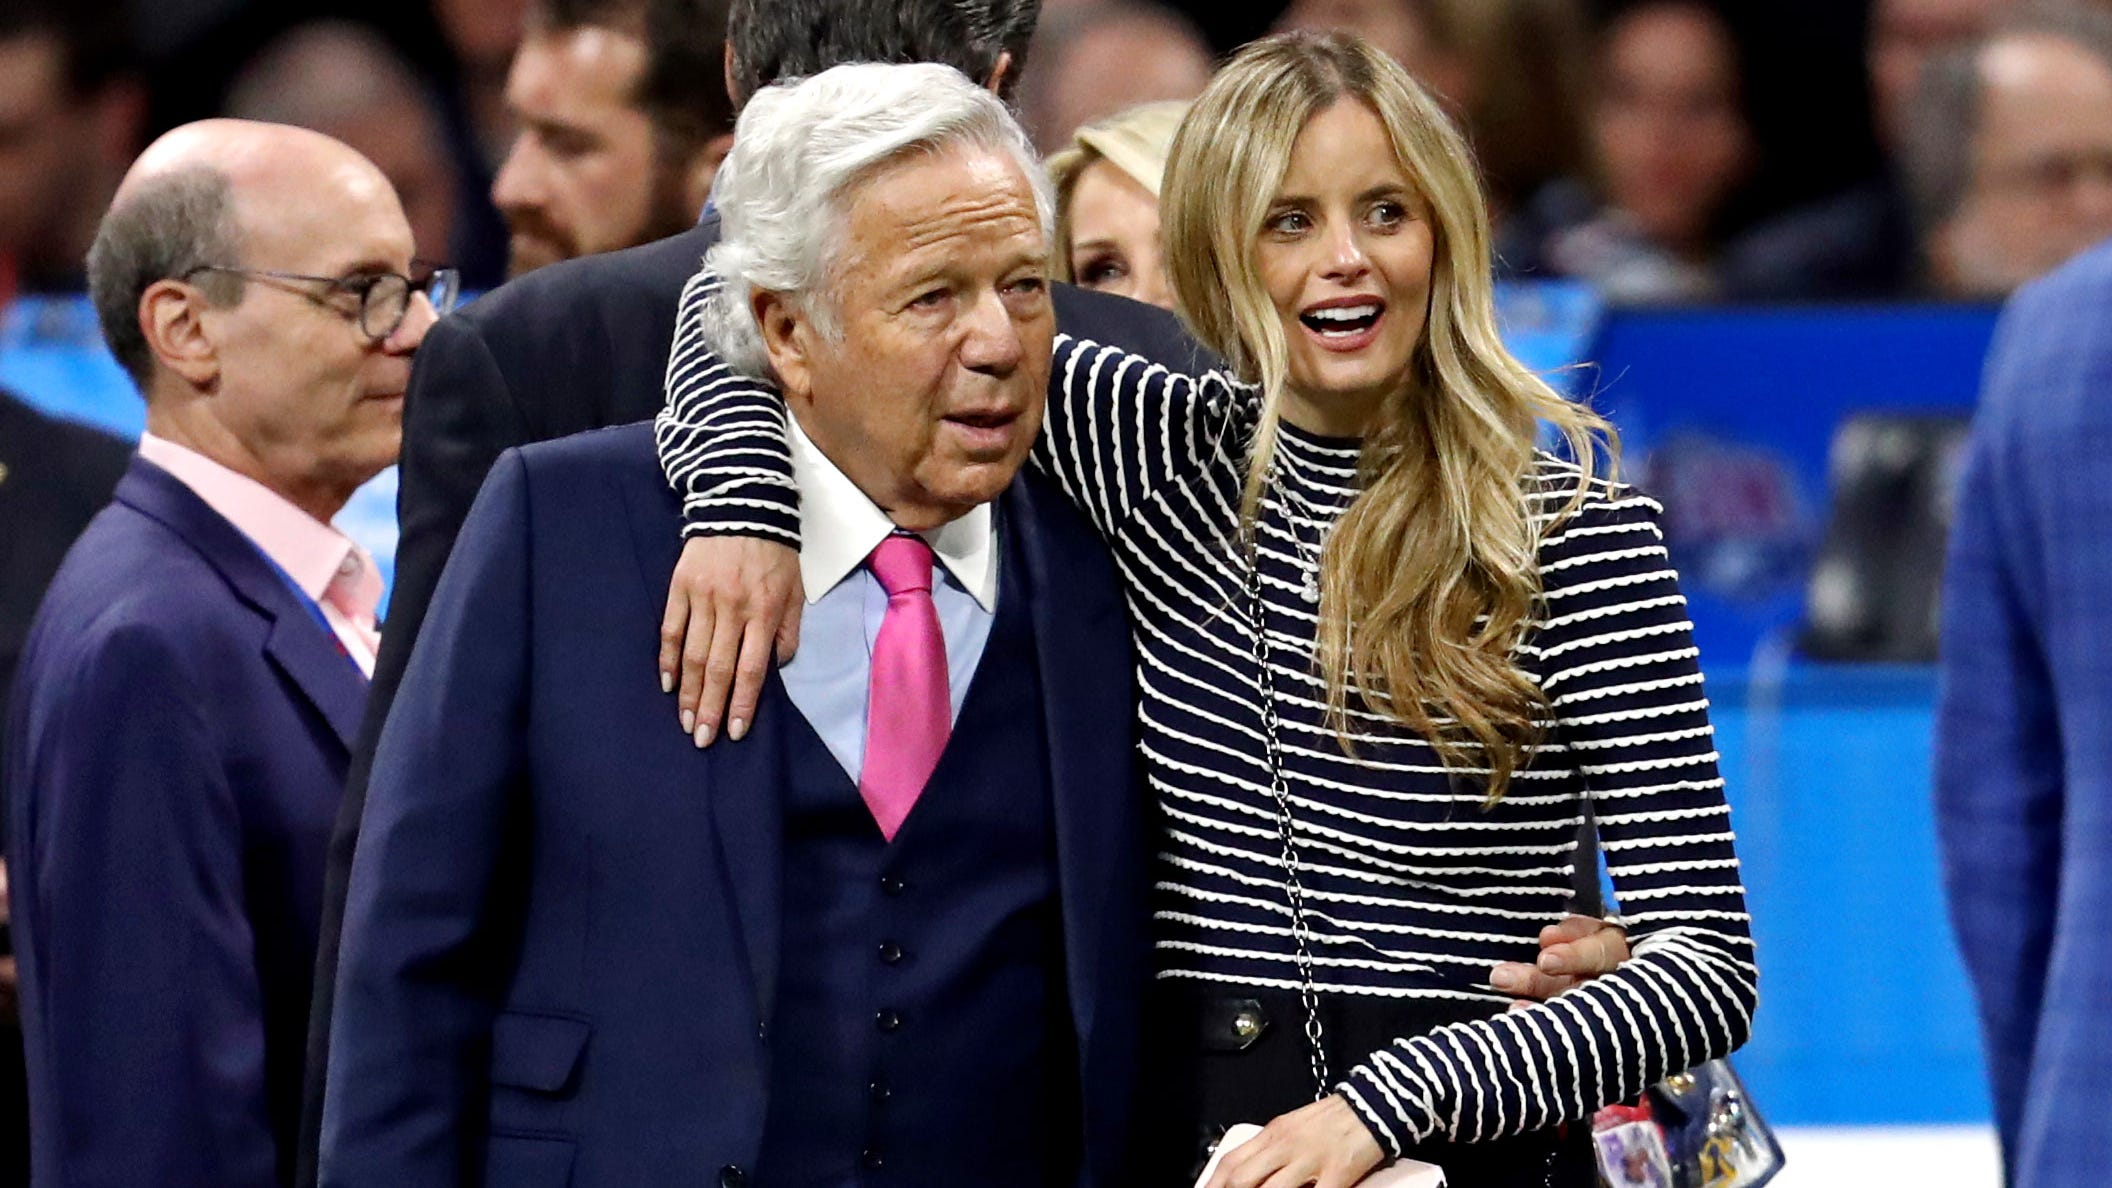 Patriots owner Robert Kraft and his girlfriend, Ricki Noel Lander, watched pregame festivities at Mercedes-Benz Stadium before Super Bowl LIII.